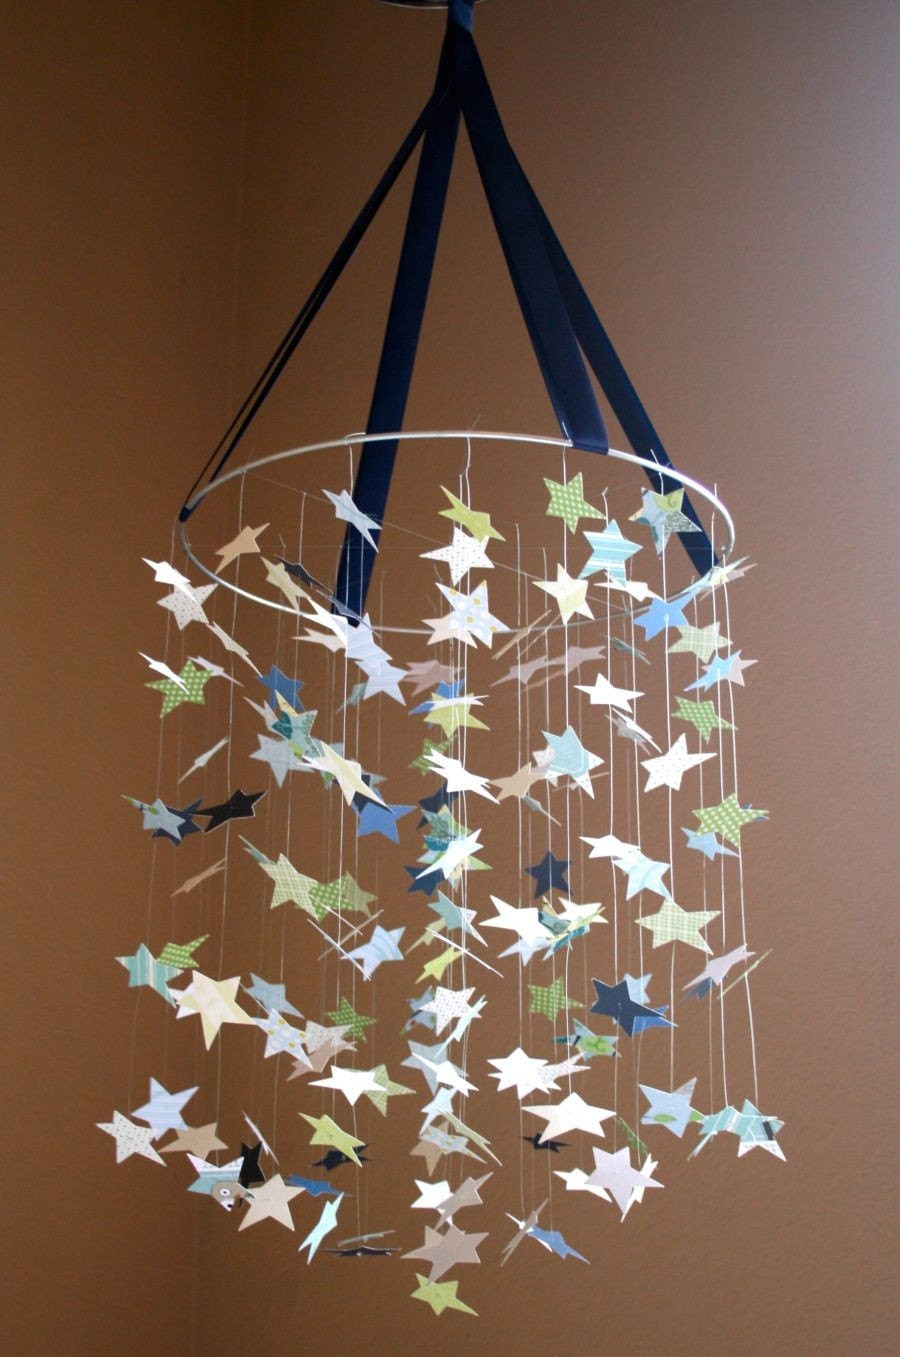 Baby Blue Star Mobile KIT-DIY-Great Craft Project